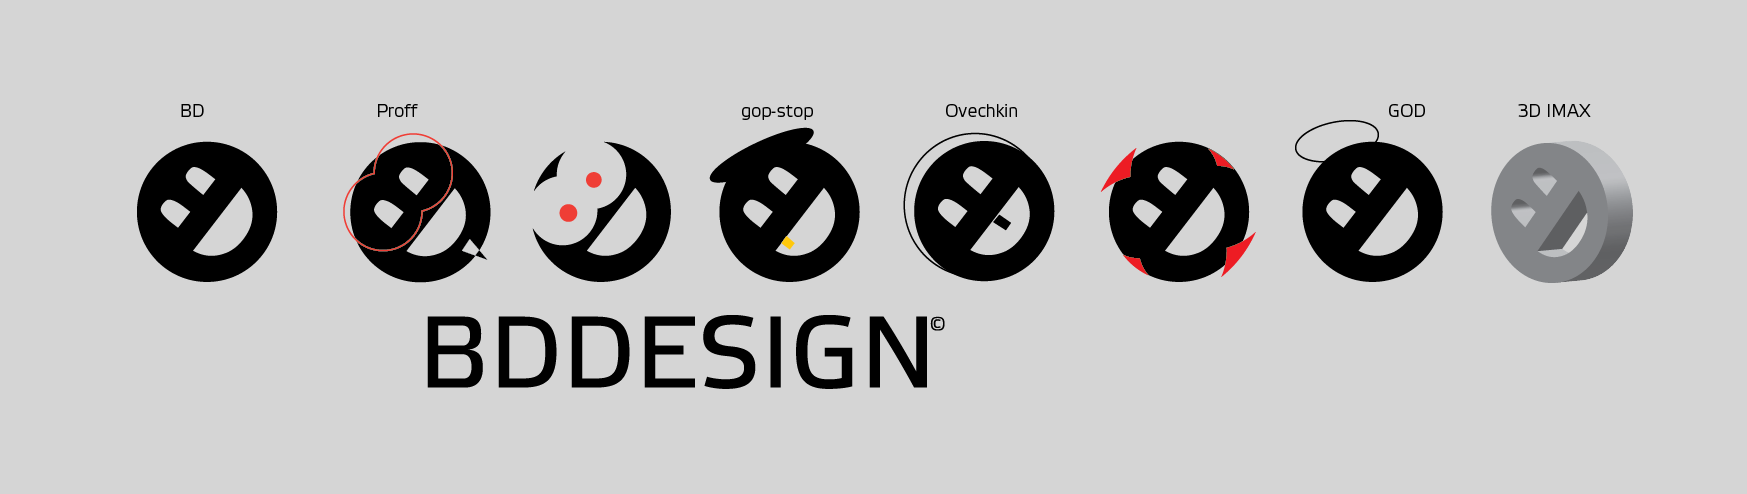 bd-design logo transform